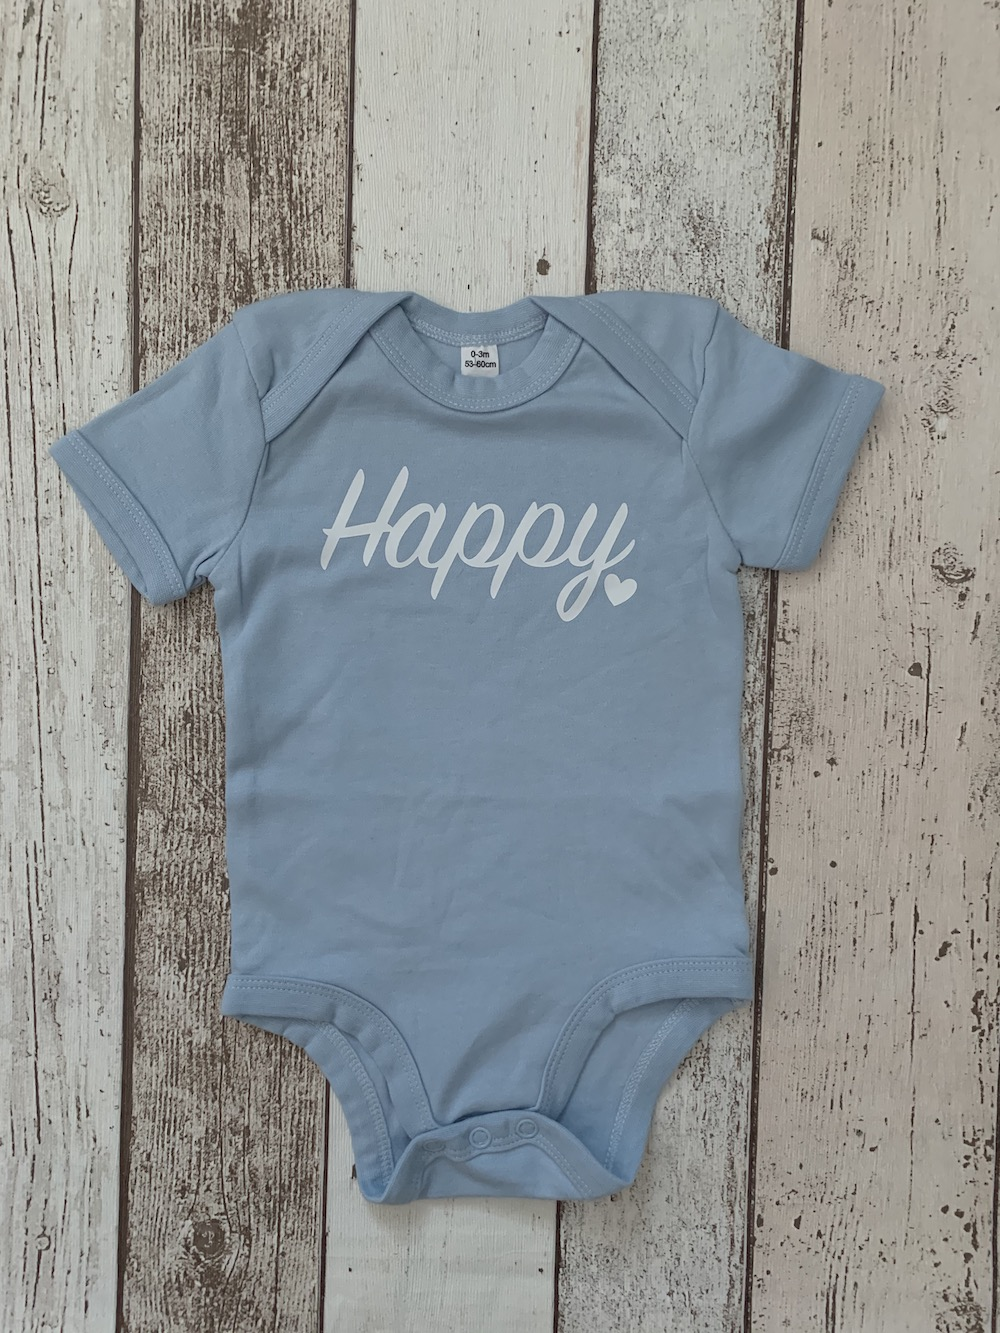 Baby Vest – Light Blue With Happy – Size 0-3 Months